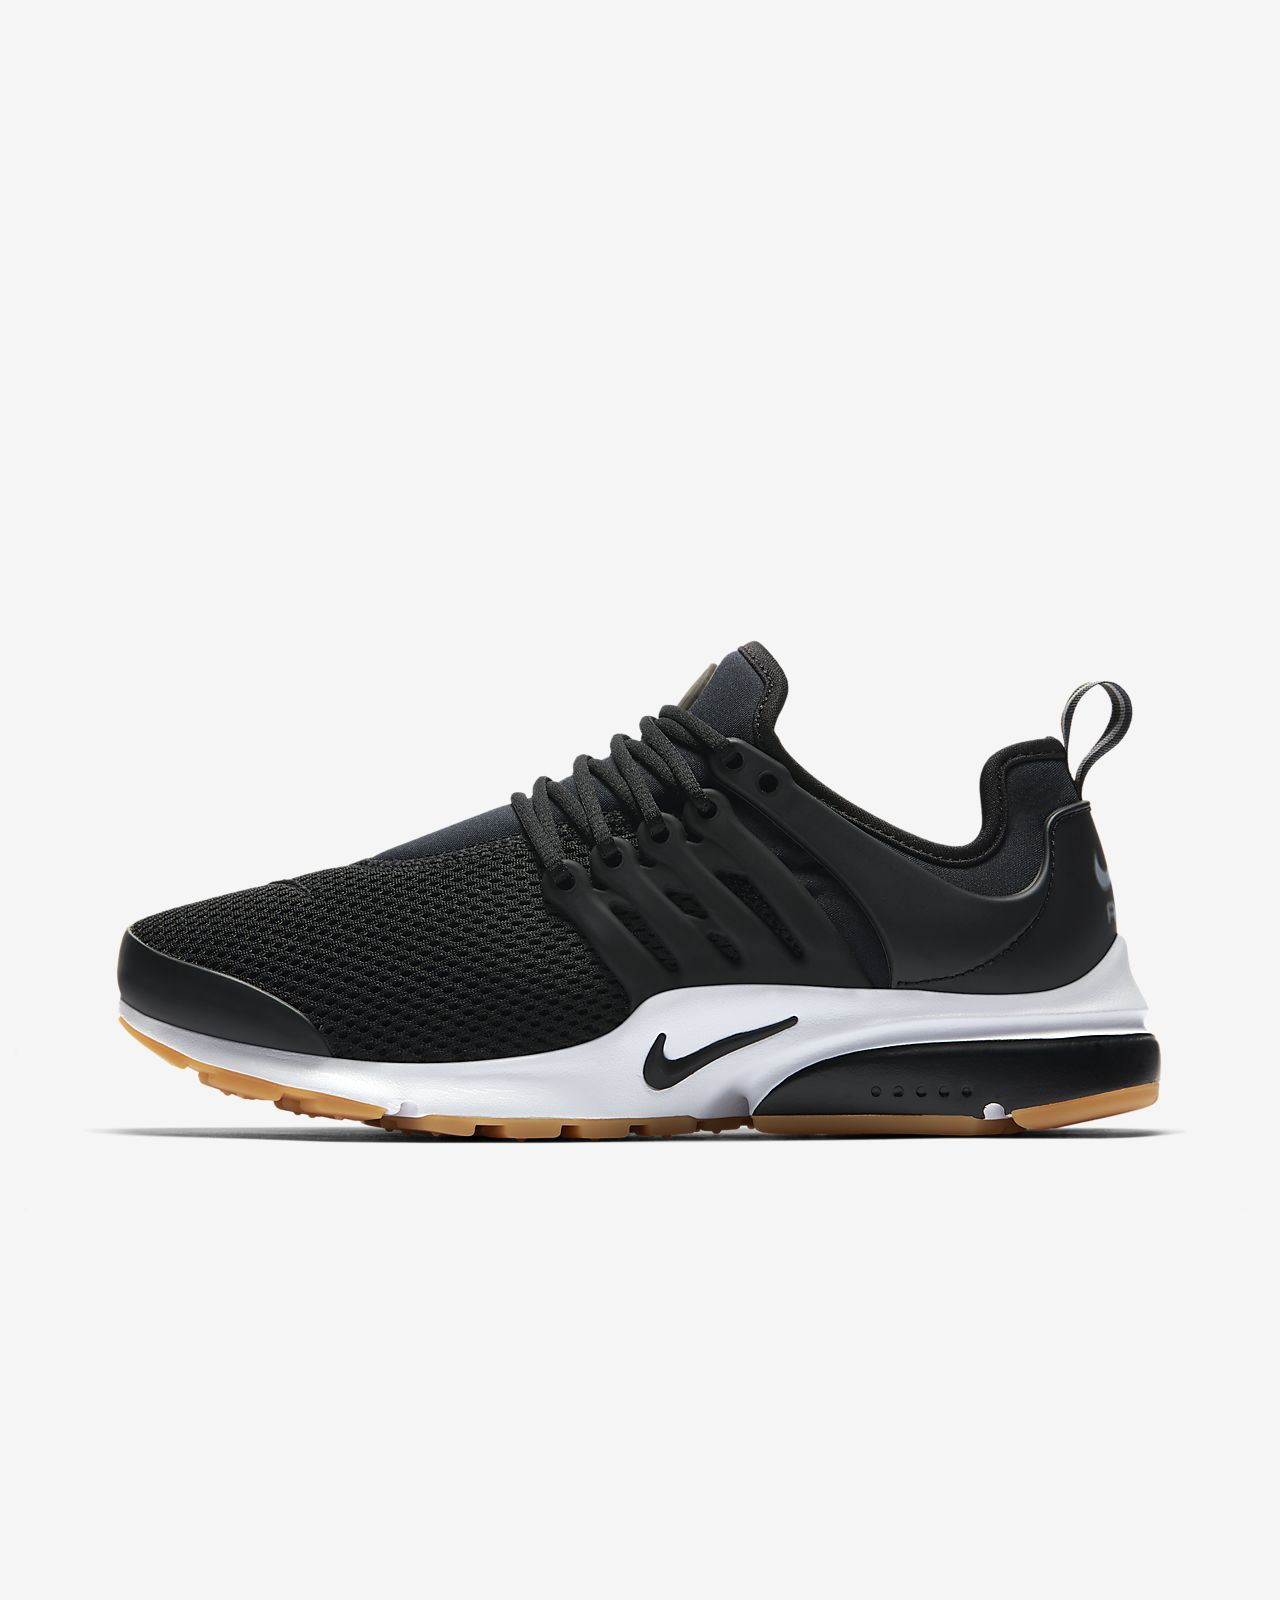 watch fa4ca 15f87 ... Nike Air Presto Women s Shoe